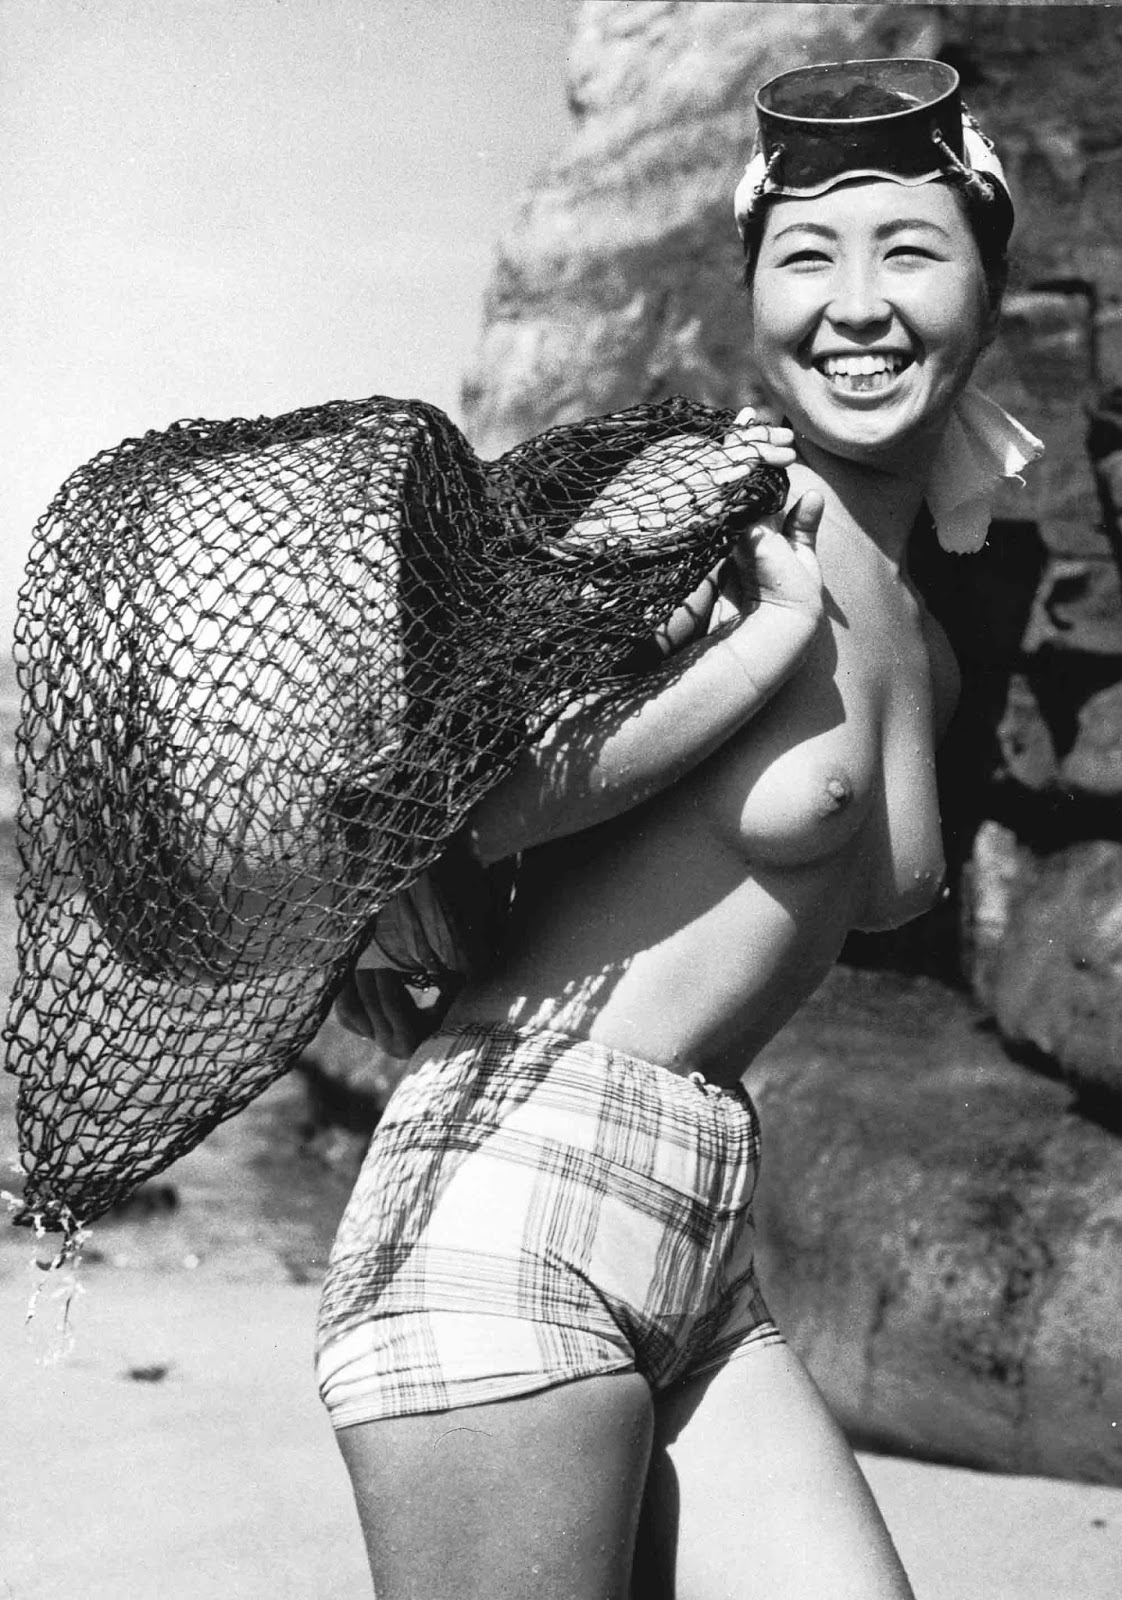 """A Japanese skin diver or """"ama"""" near the small fishing village of Onjuku in the Chiba prefecture of Japan, August 1959."""